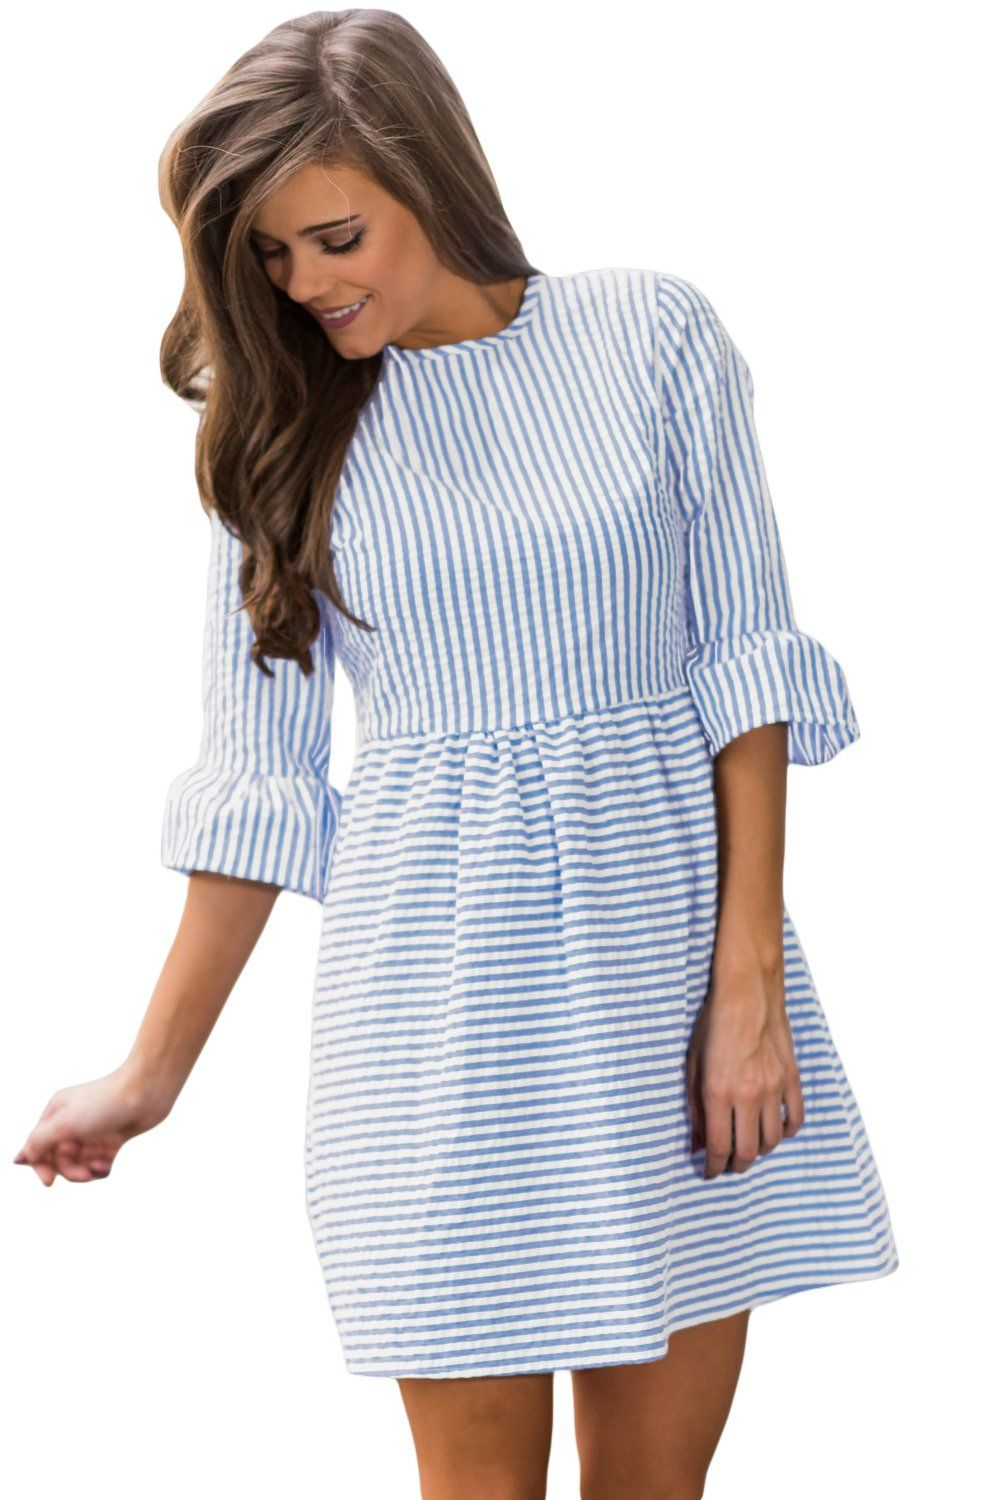 Top Tailor Womens Casual Summer 3 4 Sleeve Fit And Flare Mini Dress Sundressesnavy Whitem Details Can Be Found B Flare Mini Dress Mini Dress Seersucker Dress [ 1500 x 1001 Pixel ]